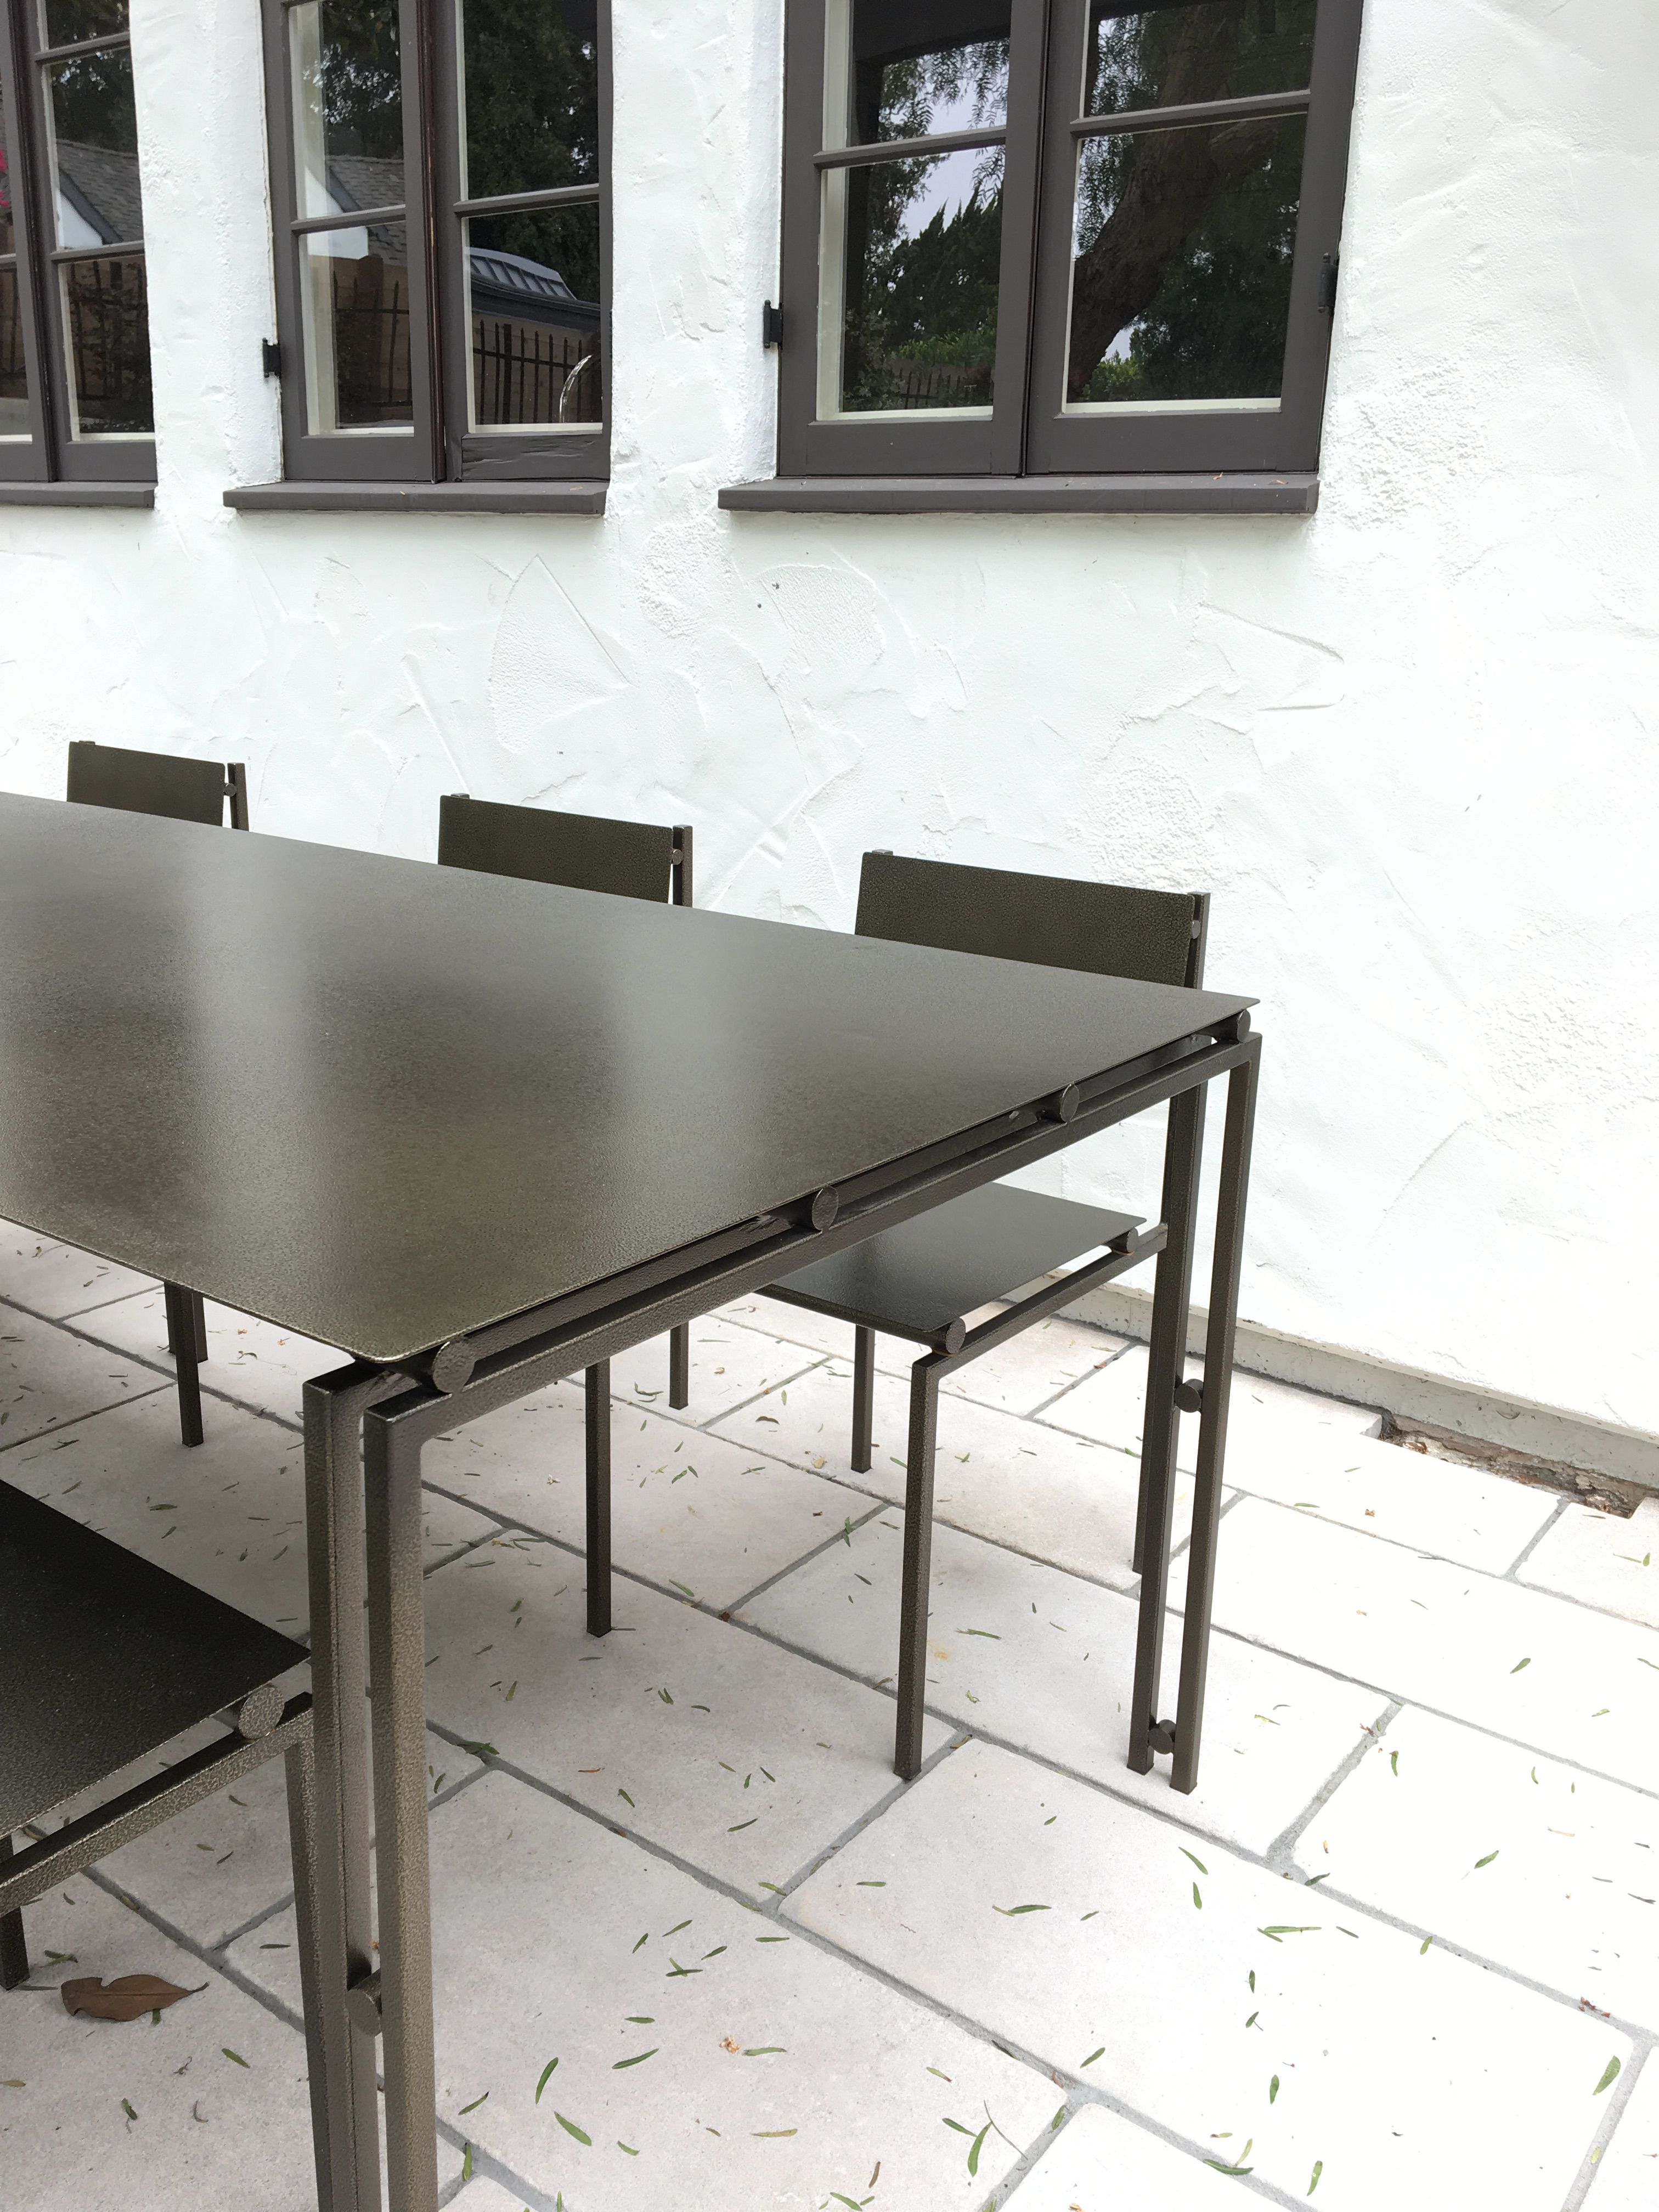 Suspension Metal Dining Table - Large Size product image 8